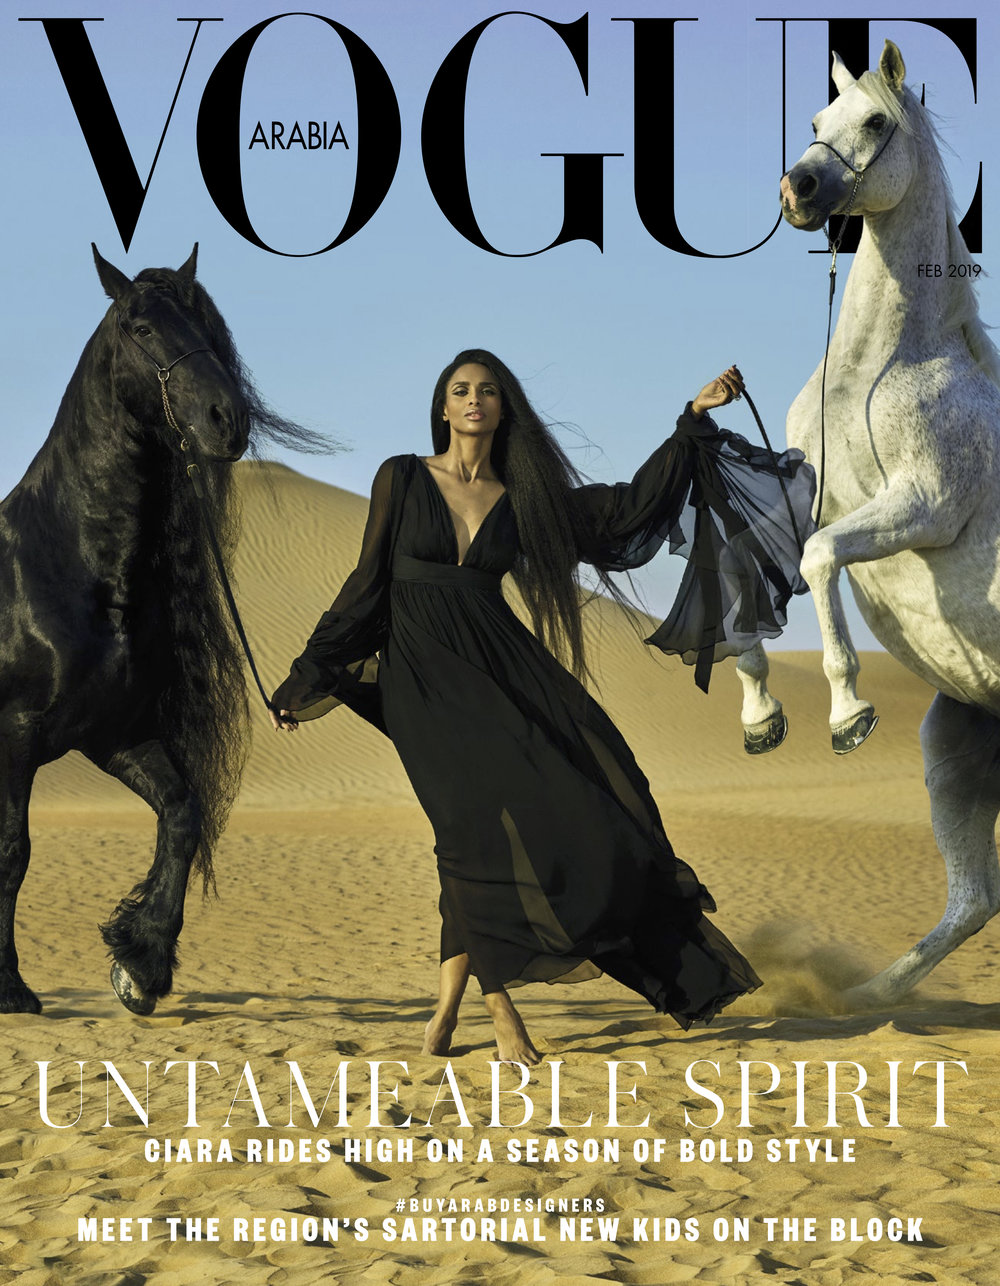 Ciara x Vogue Arabia